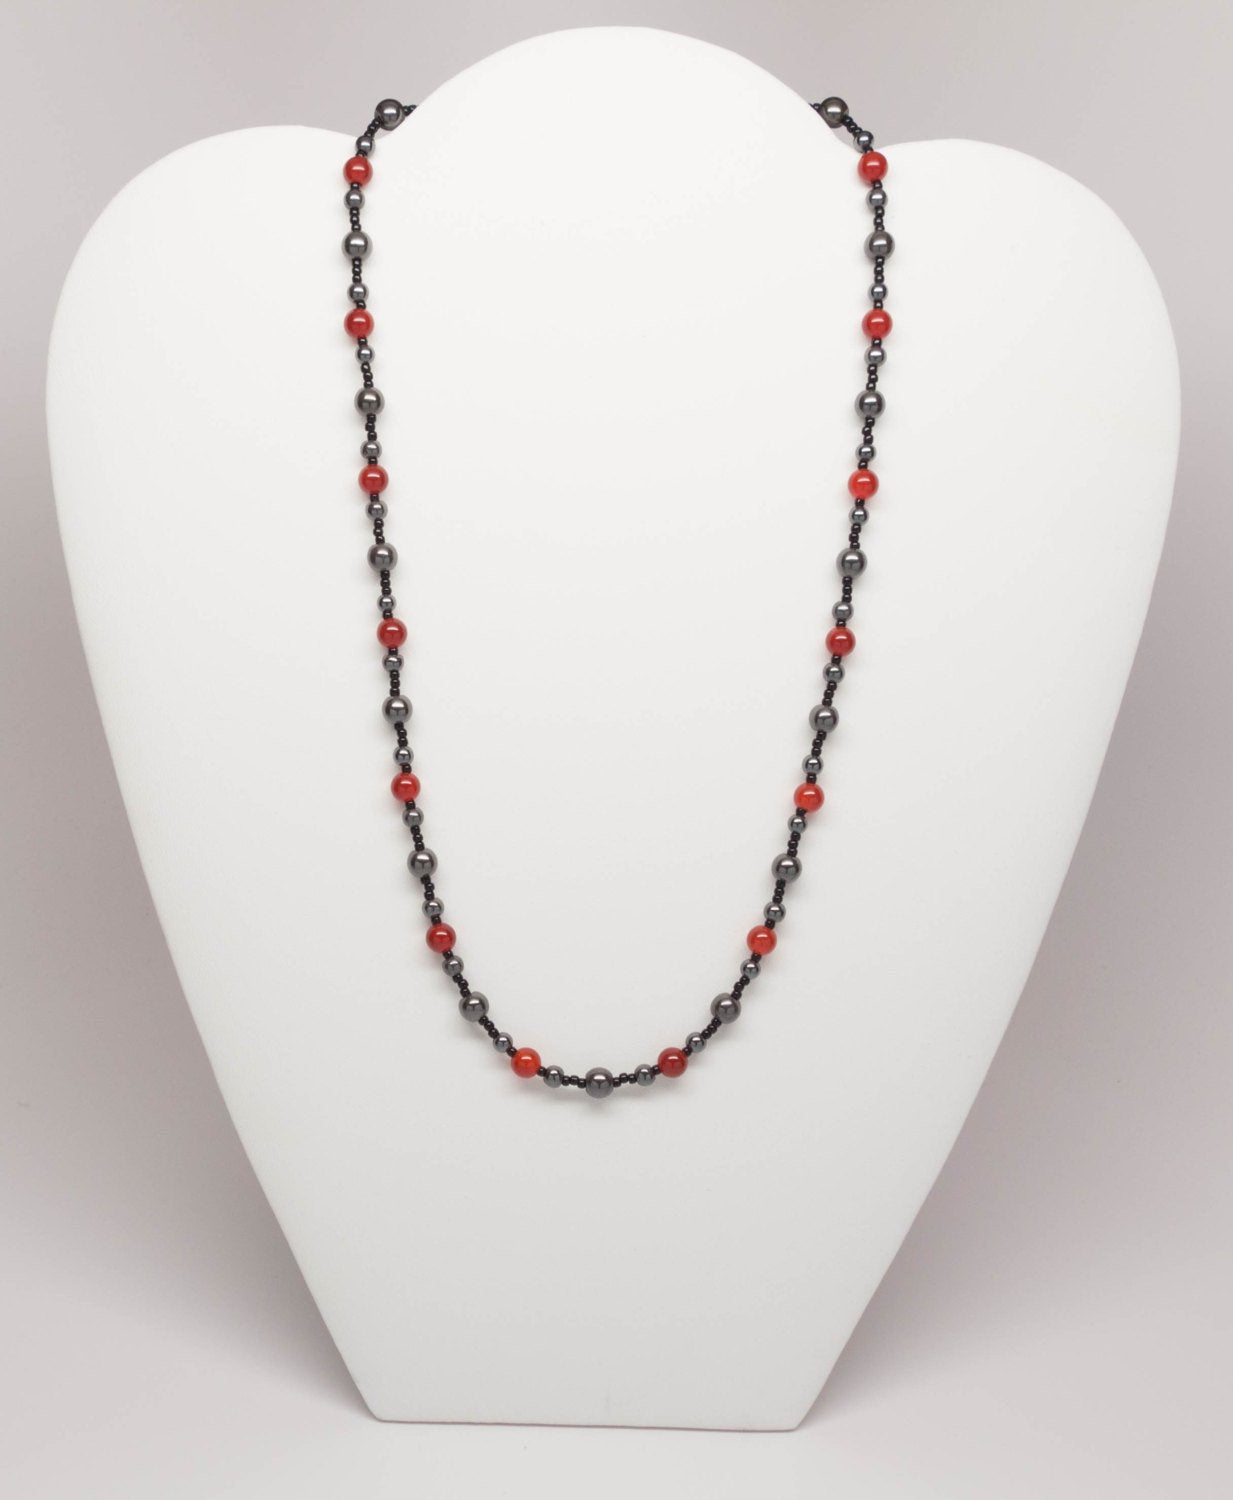 Beautiful Carnelian and Hematite Necklace handmade by LMCK Designs